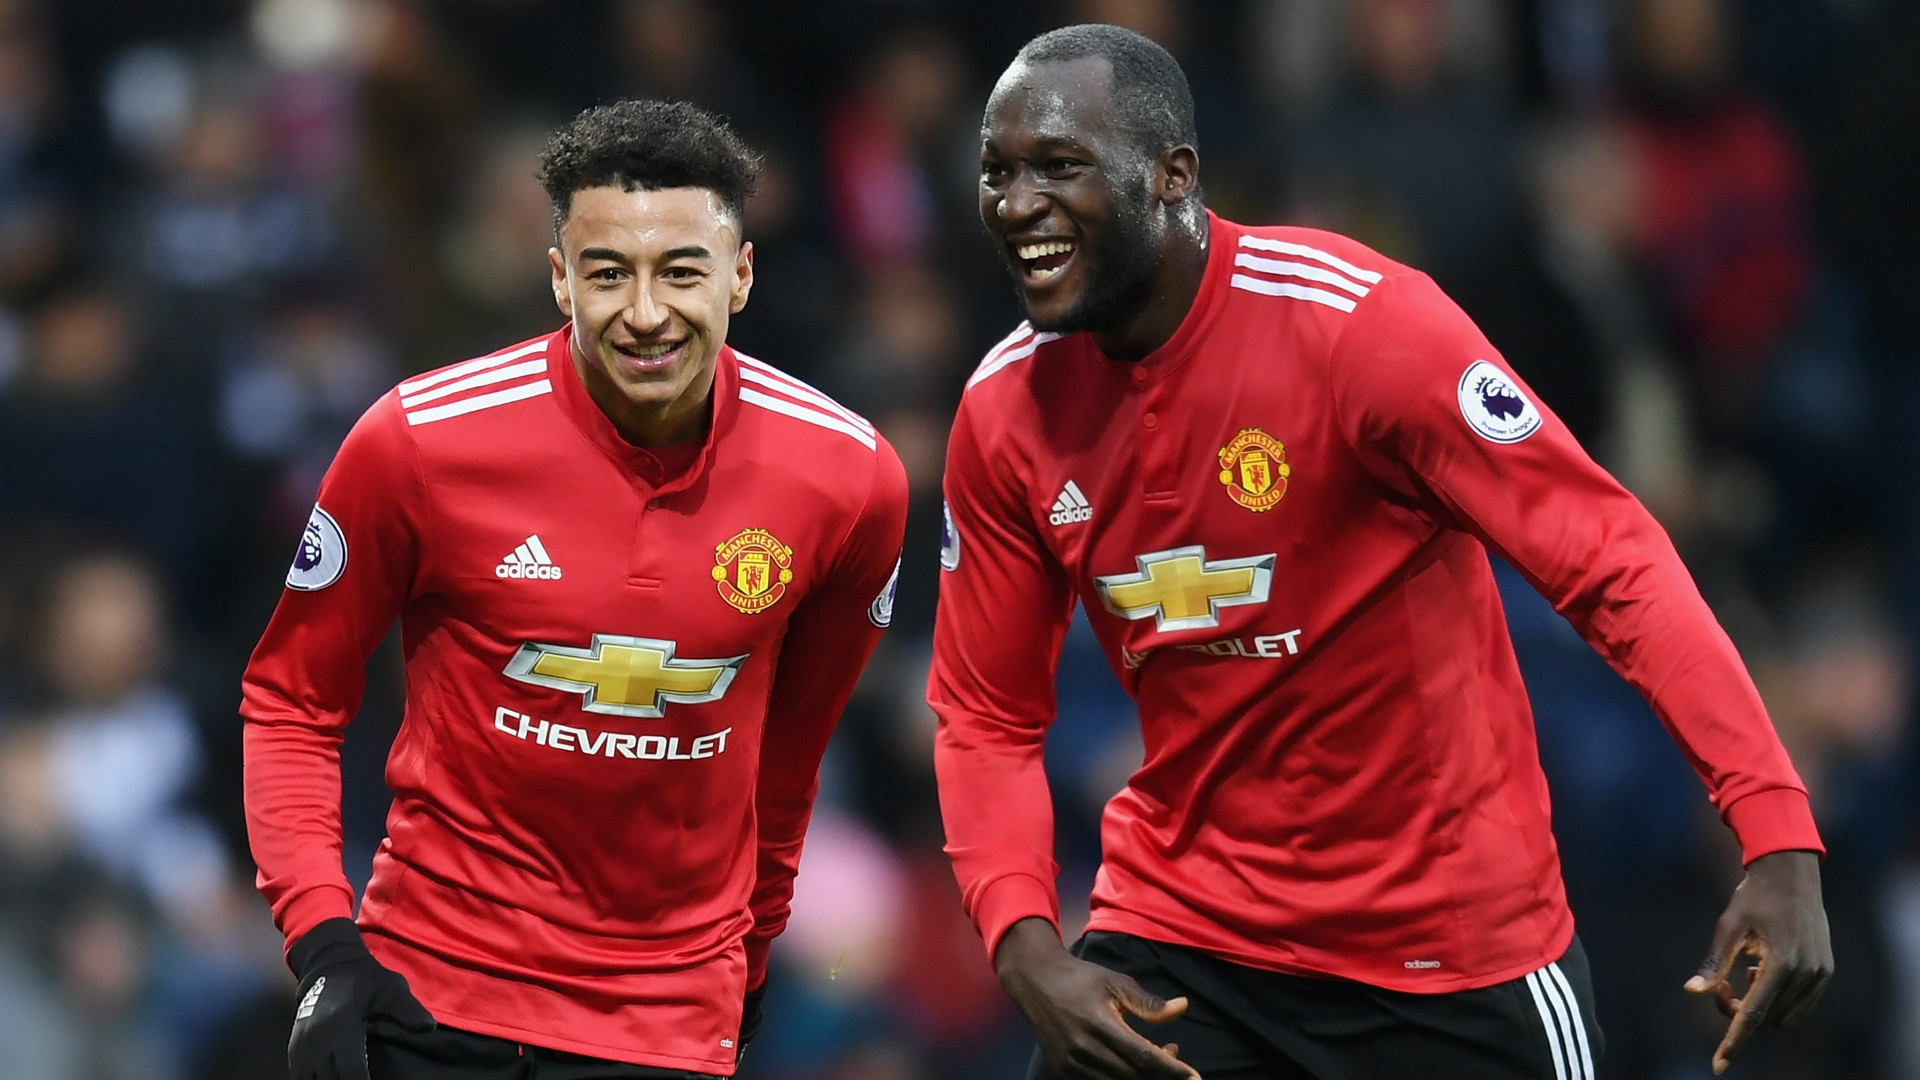 West Brom 1-2 United: 4 things we learned